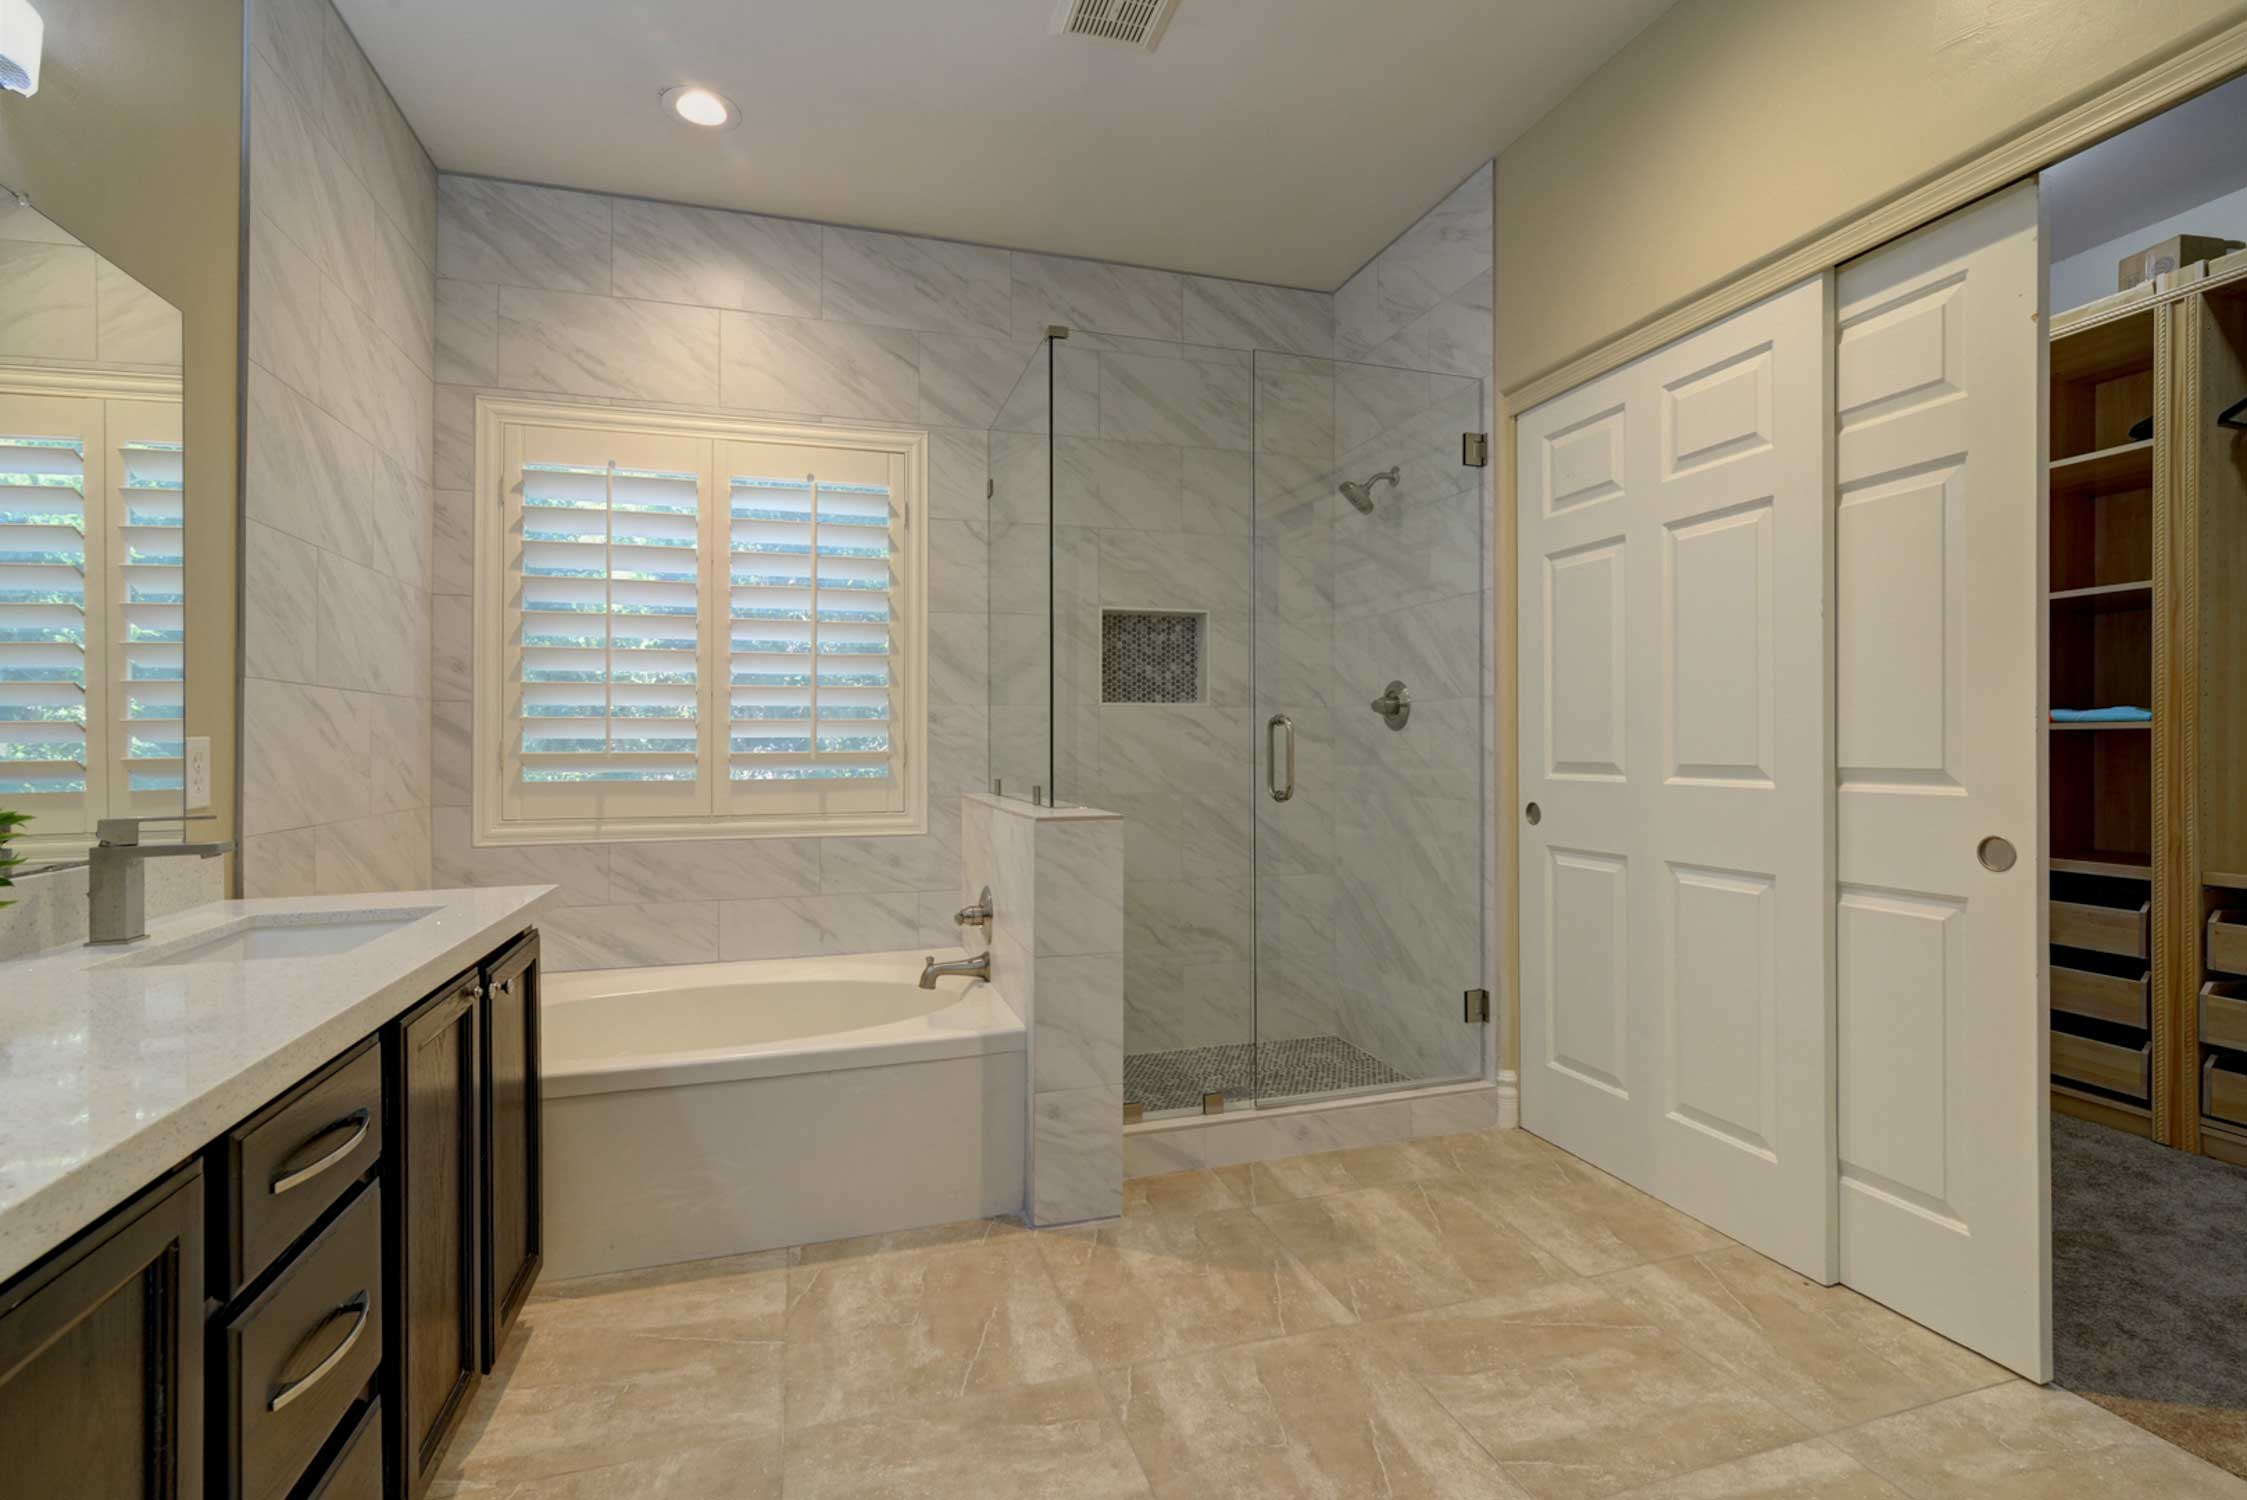 Relax in the soaking tub or rinse off in the walk-in shower.